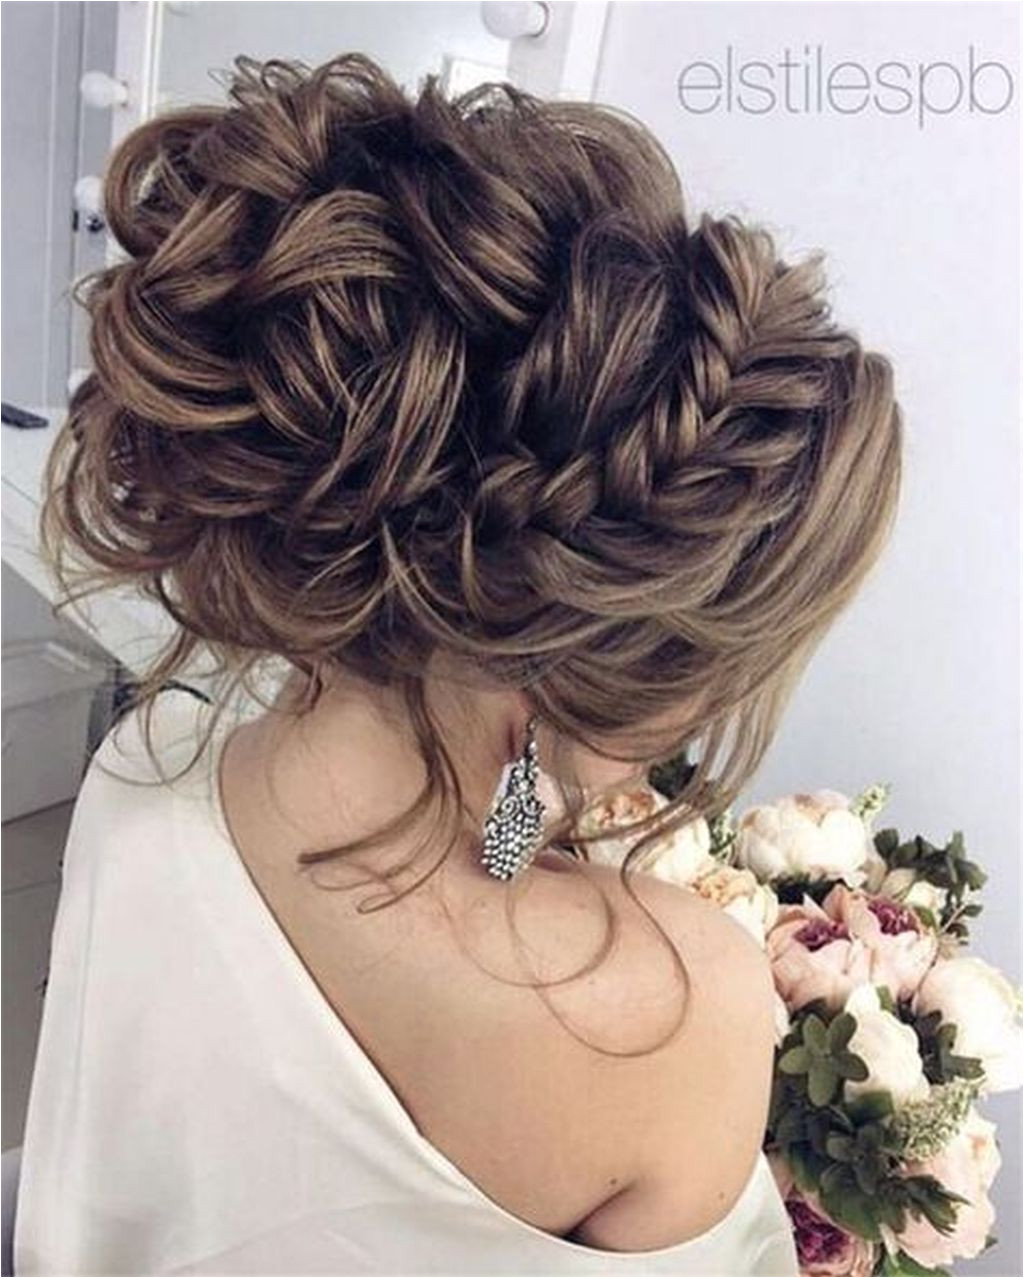 nice 86 Classy Wedding Hairstyle Ideas for Long Hair Women classy wedding hairstyle ideas long hair women